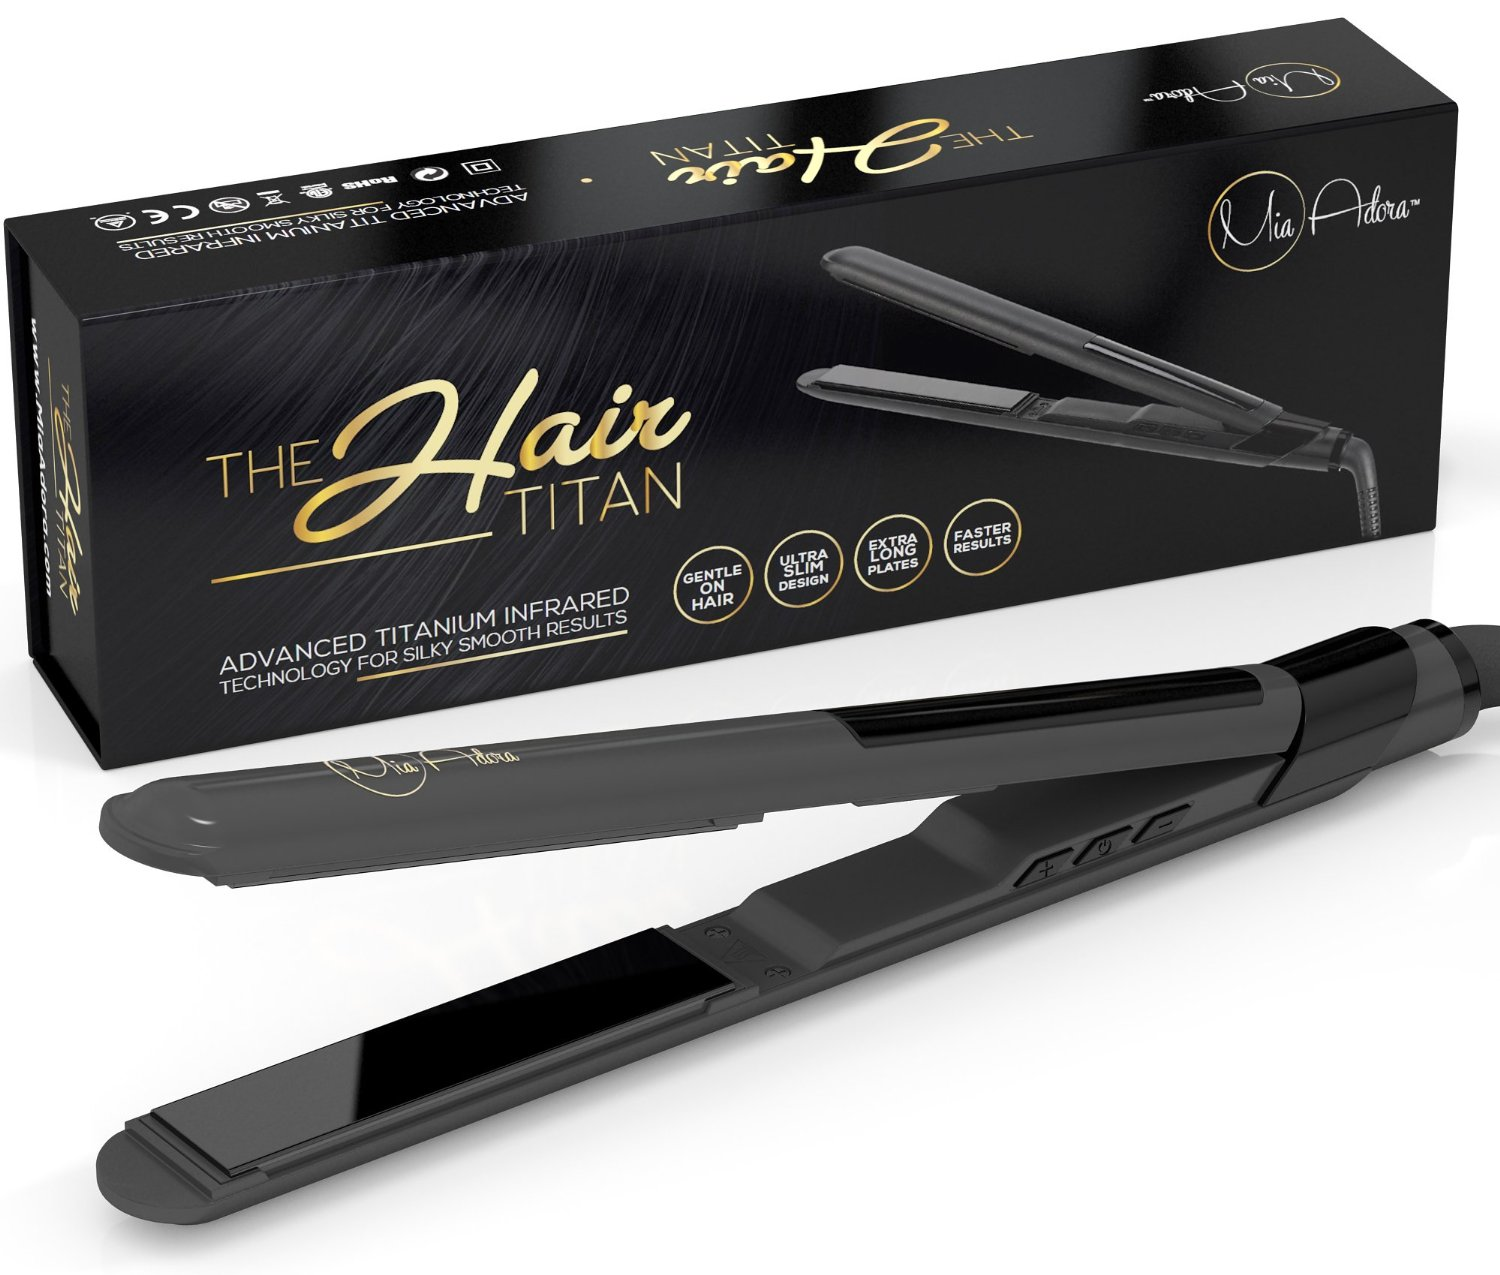 best hair styling iron best flat iron for curly hair thick hair amp more top 10 3379 | 81DWlvapg7L. SL1500